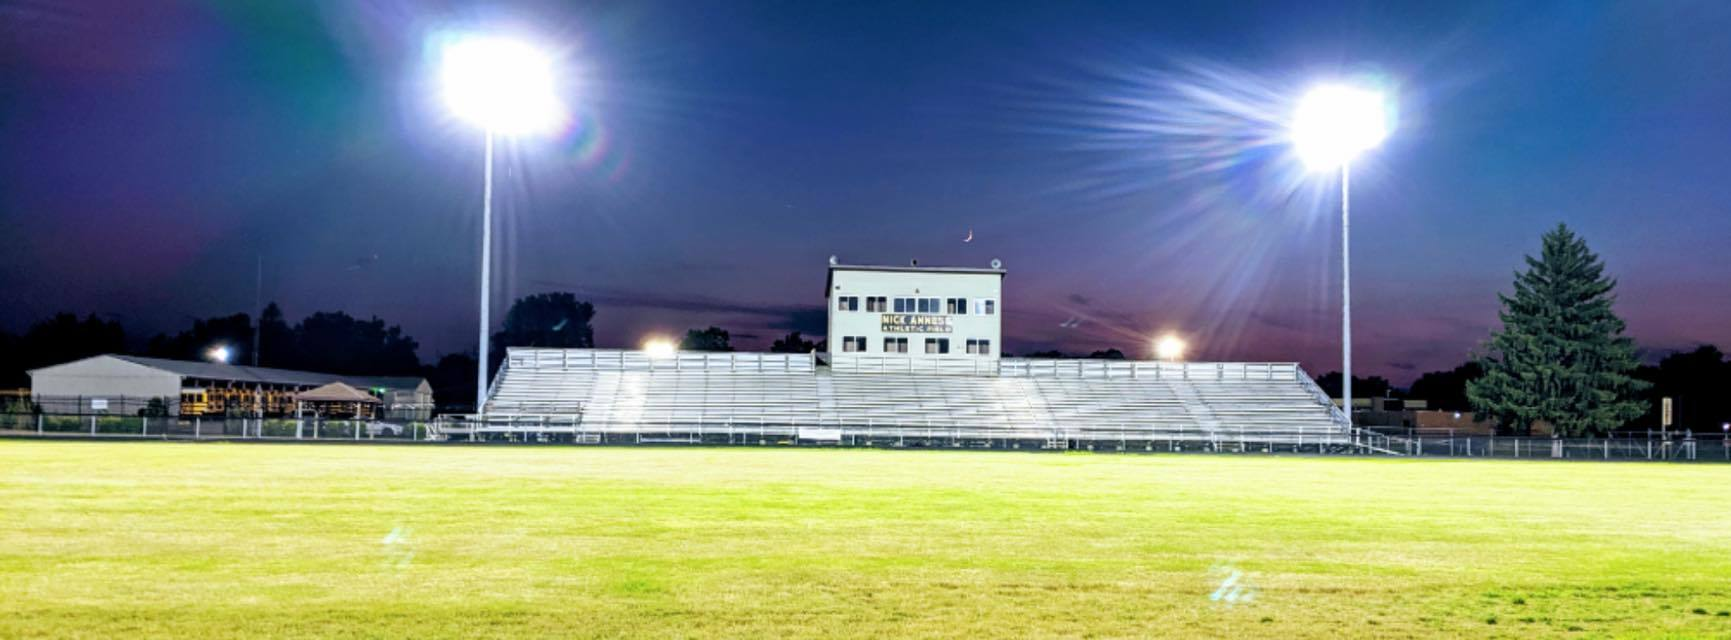 Nick Annese Athletic Field